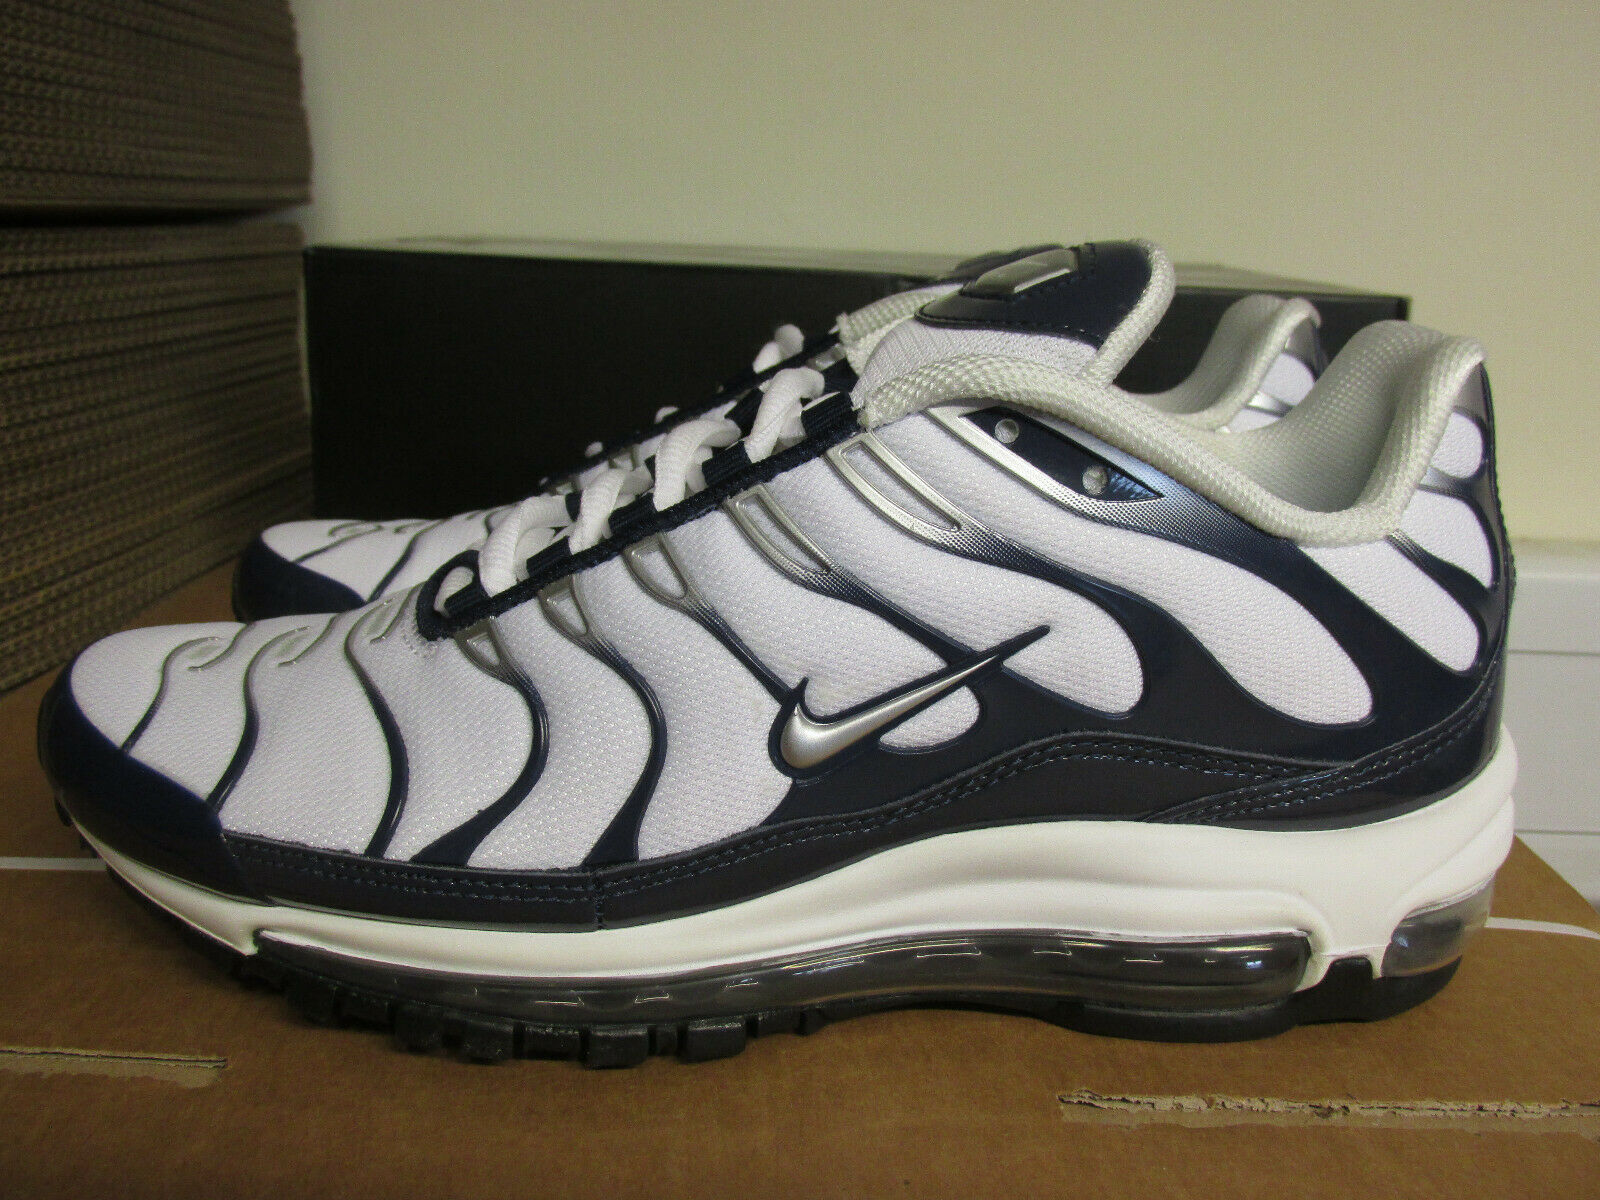 Nike Air Max 97 Plus Mens Running Trainers AH8144 100 Sneakers Shoes CLEARANCE